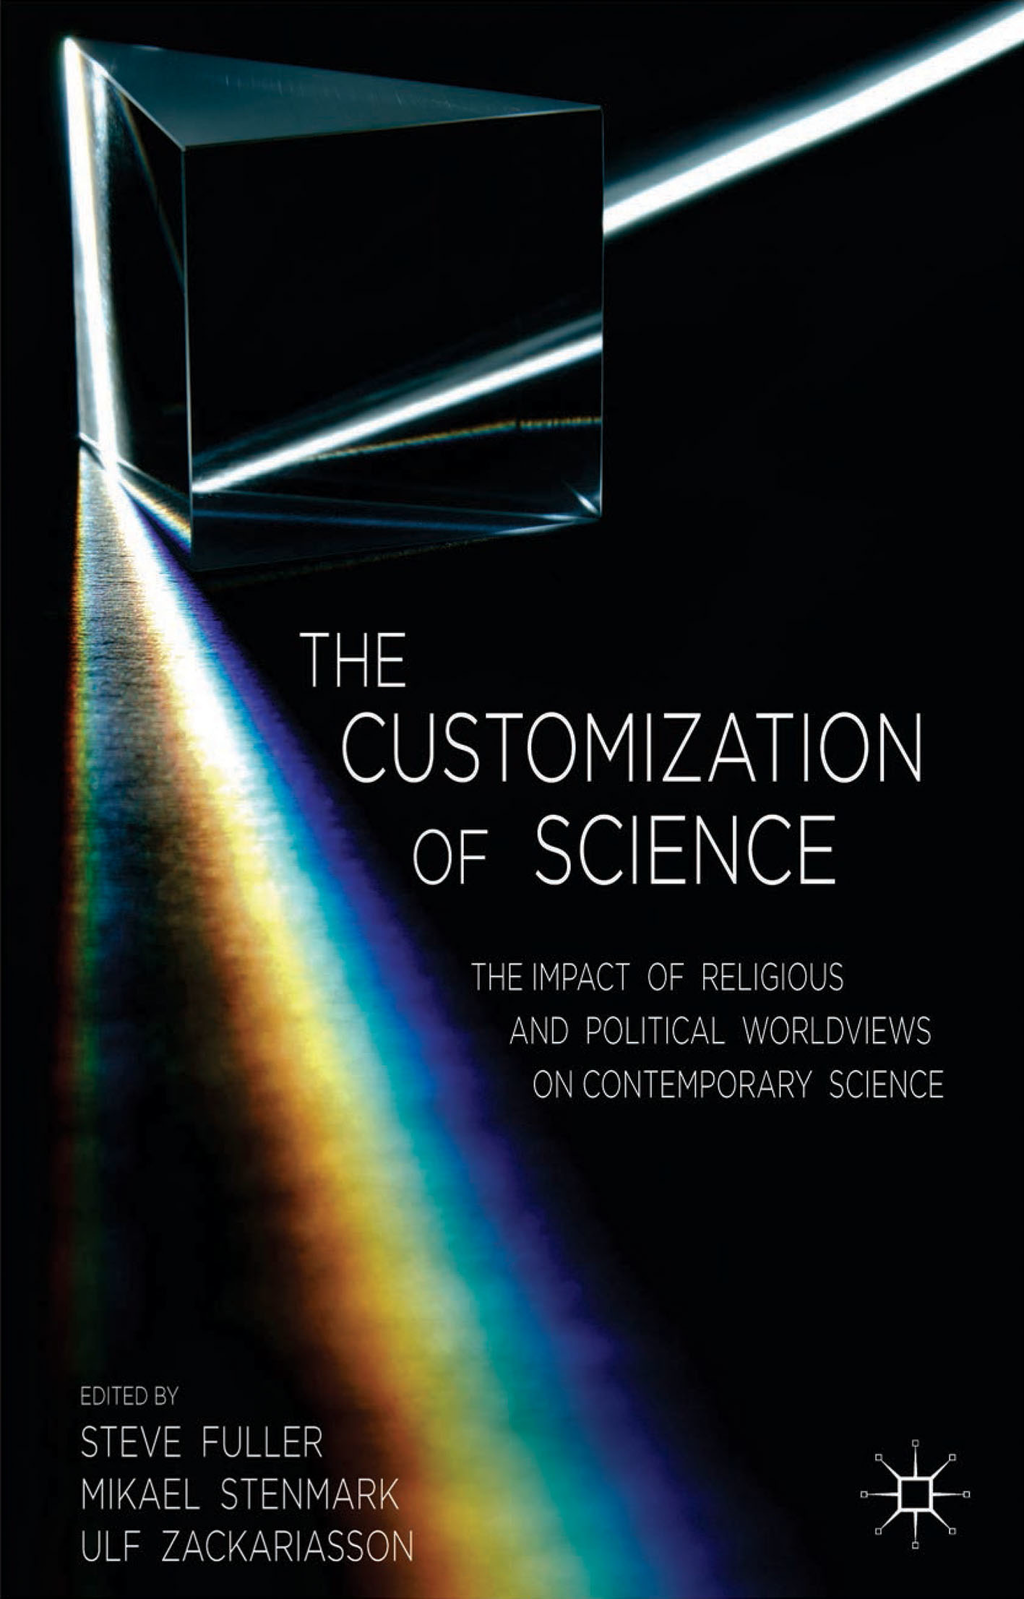 The Customization of Science The Impact of Religious and Political Worldviews on Contemporary Science